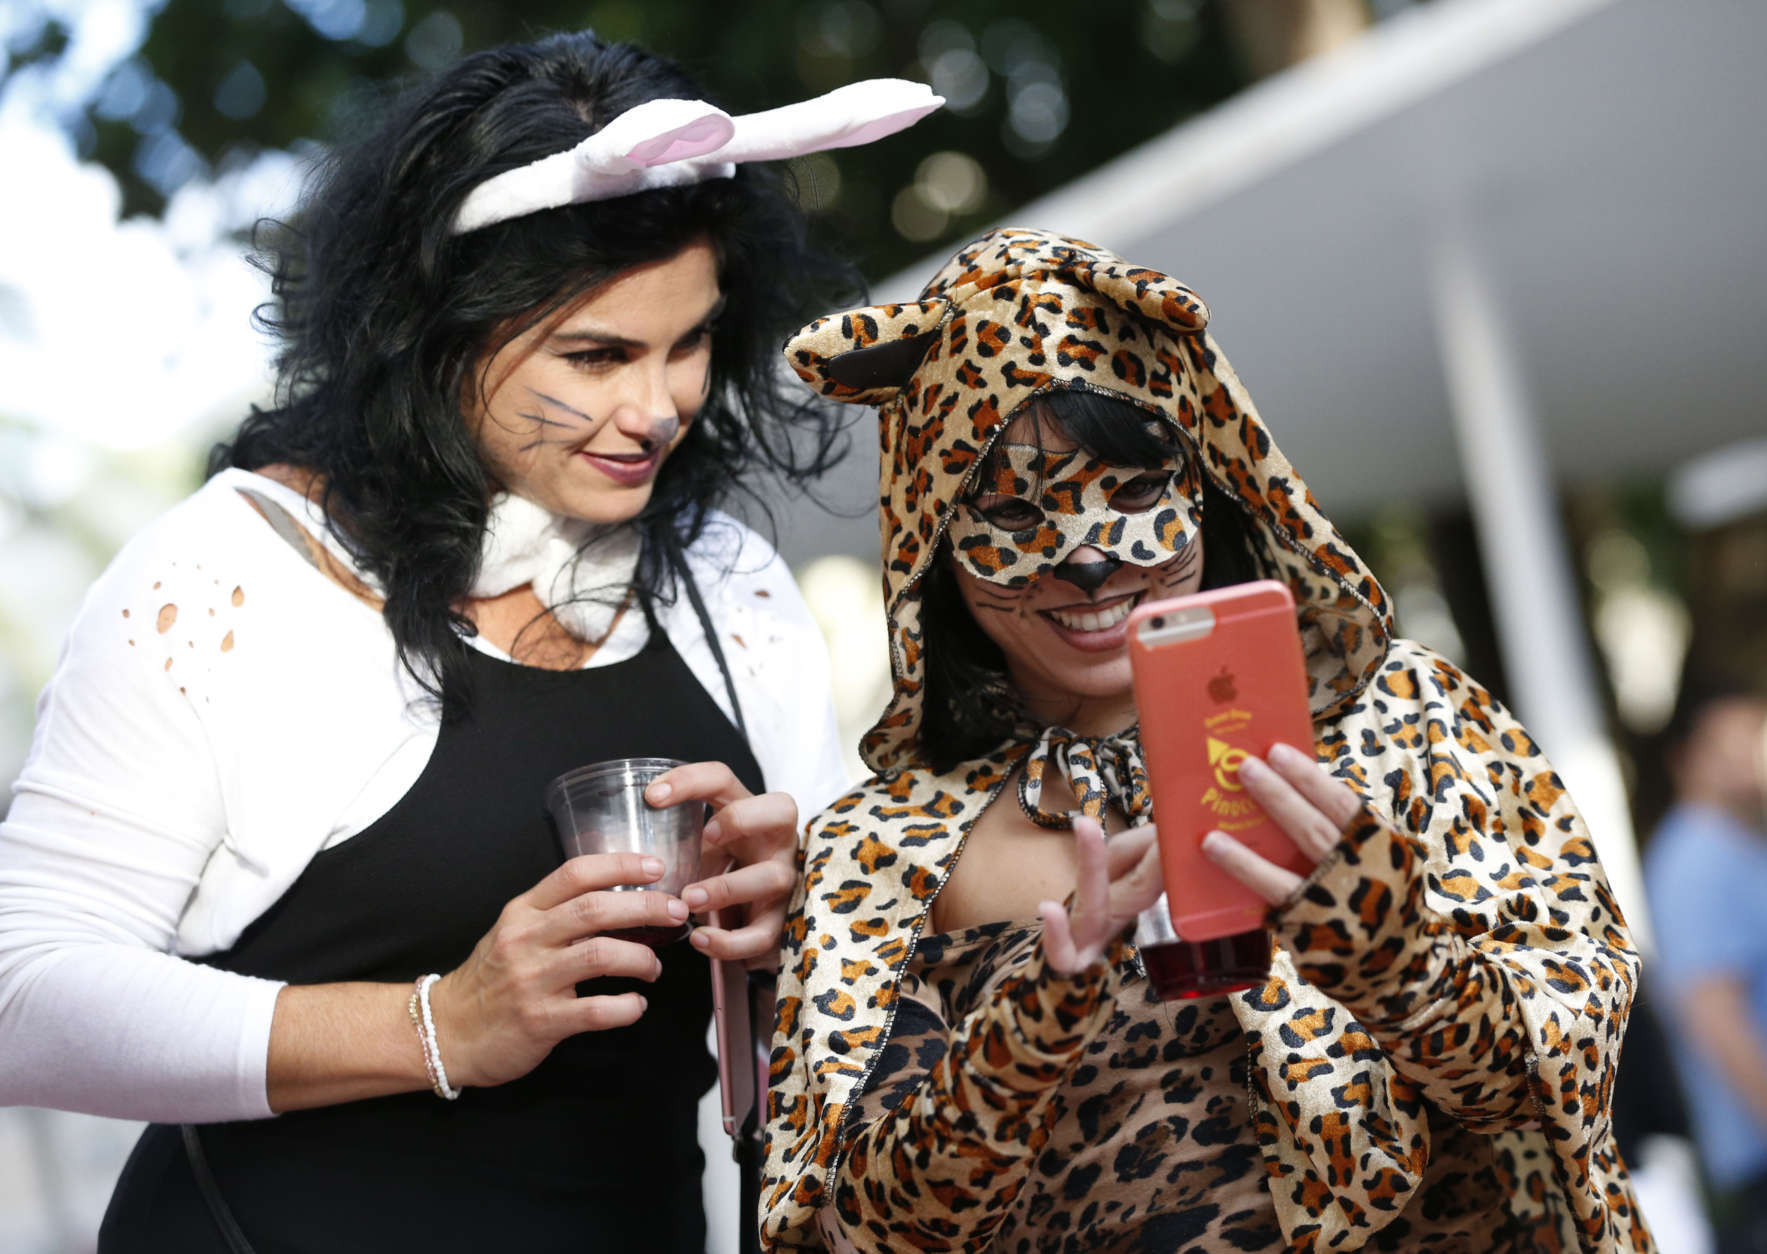 Annabel Sanchez, left, and Grety Artiles stop to take a selfie as they walk along the Lincoln Road pedestrian mall for Halloween, Tuesday, Oct. 31, 2017, in the South Beach neighborhood of Miami Beach, Fla. (AP Photo/Wilfredo Lee)